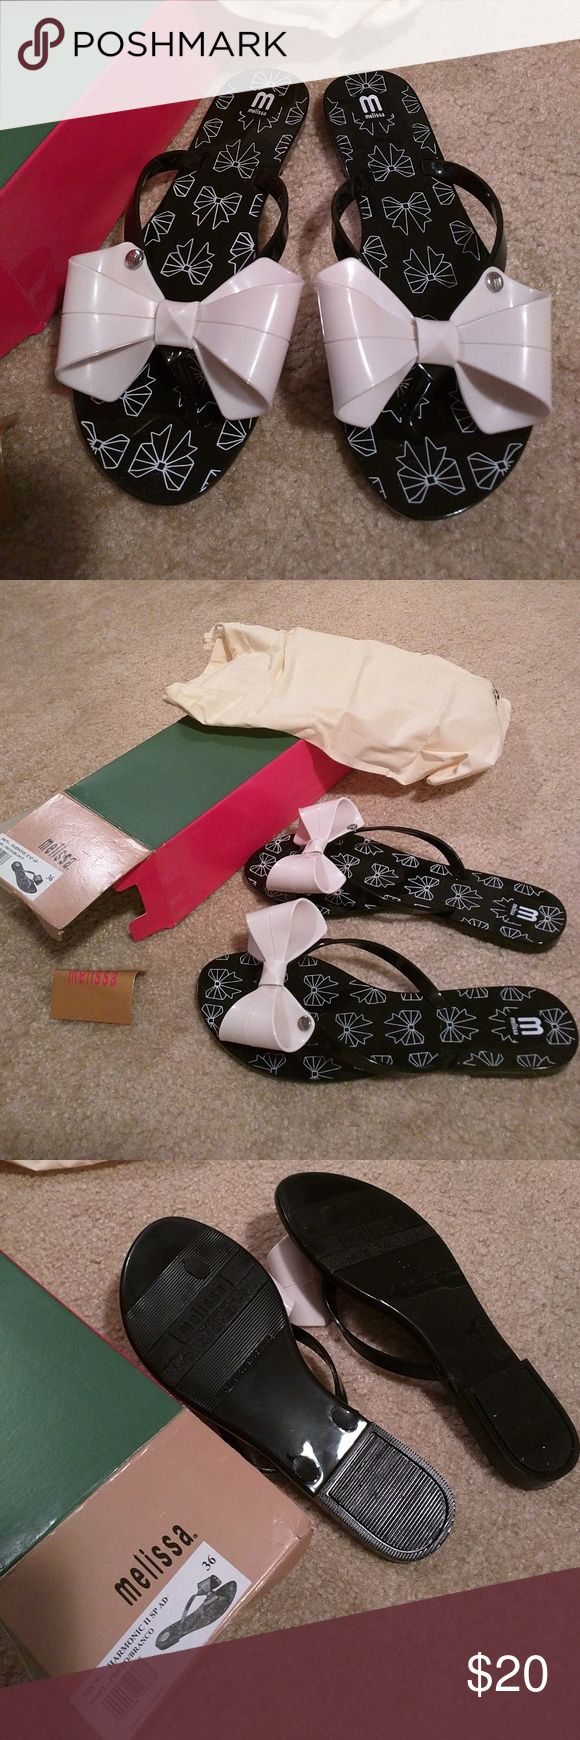 Bow Thong Flip Flops from Brazil These plastic flip-flops have a pleasant smell to them. They come with the original box, fabric bag, and inspirational insert. Made in Brazil and bought in Brazil. The colors are black and white. Melissa Shoes Sandals